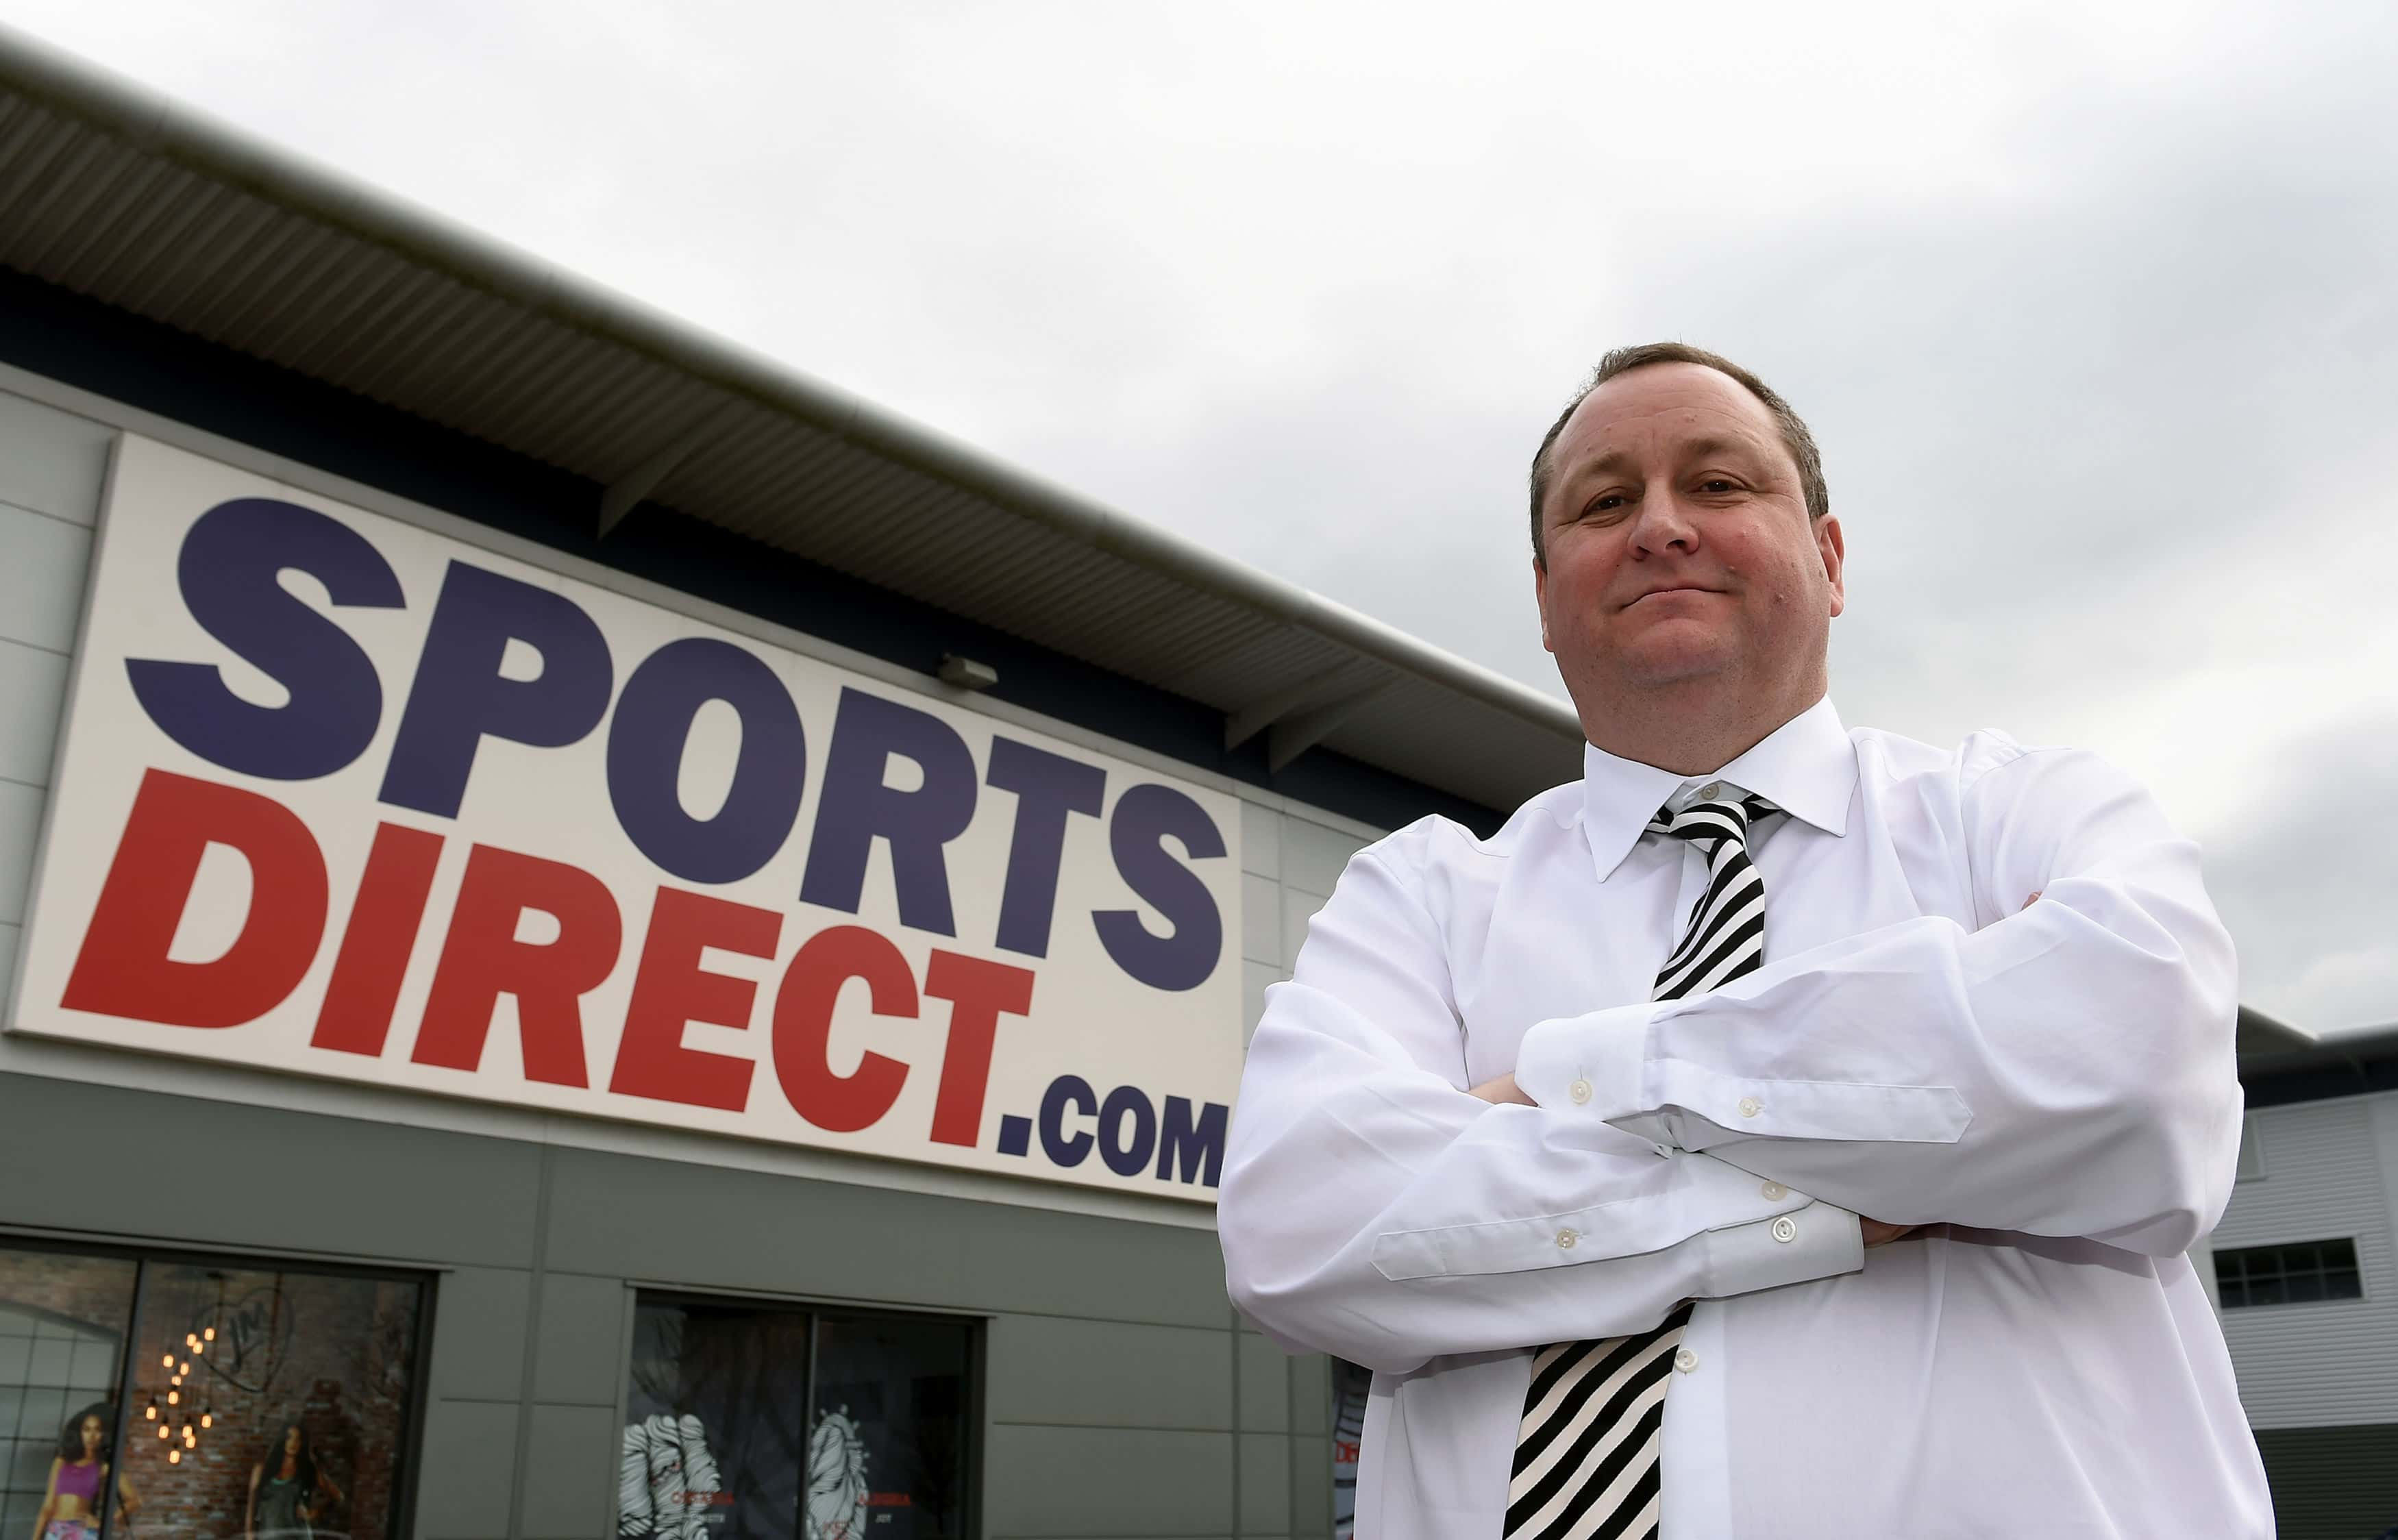 Mike Ashley is the founder of Sports Direct and owner of Newcastle United.  Picture by: Joe Giddens / PA Wire/Press Association Images